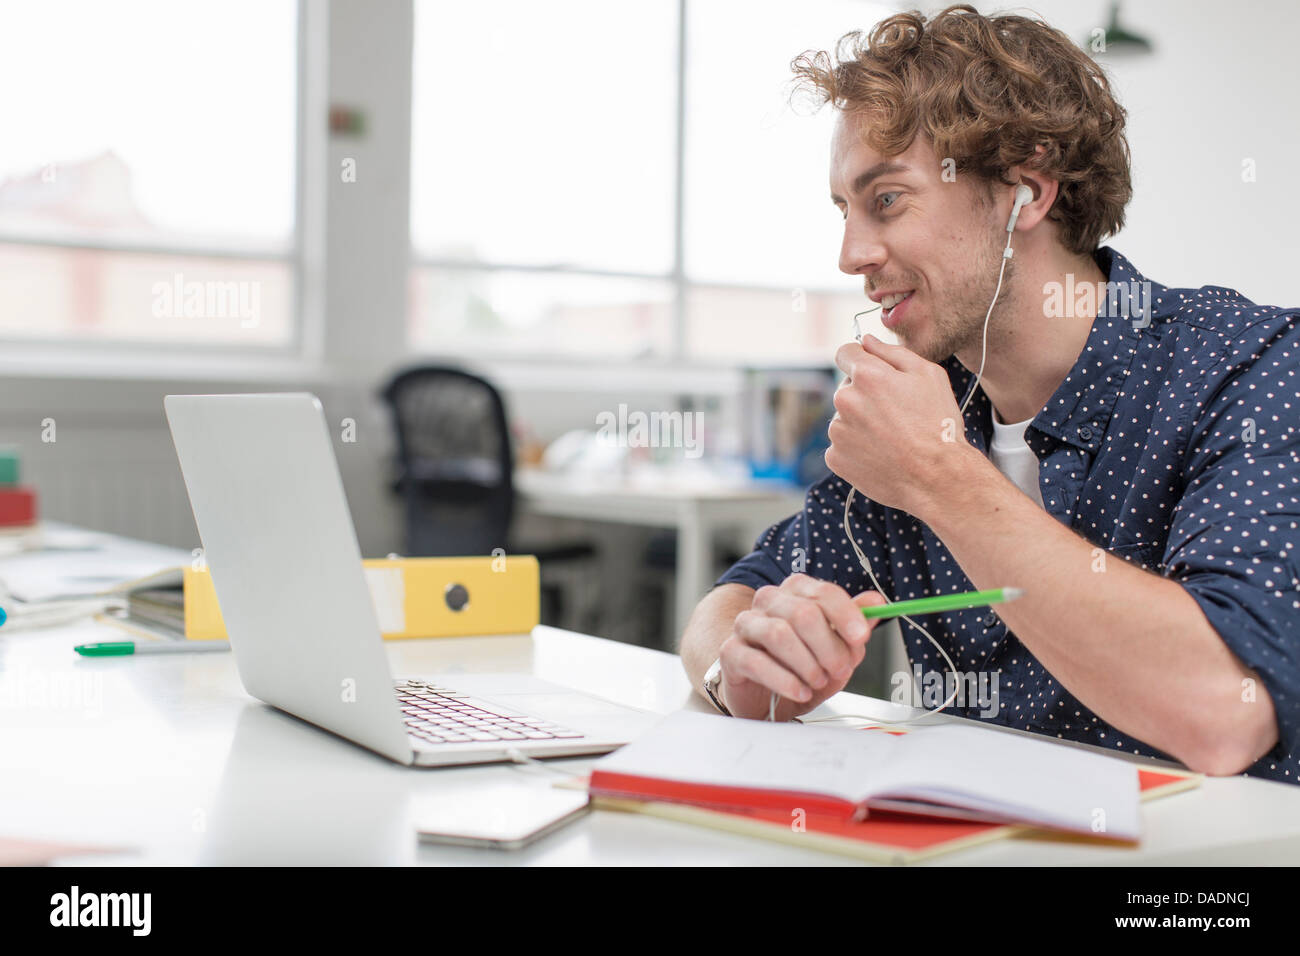 Young office worker using laptop and earphones at desk - Stock Image